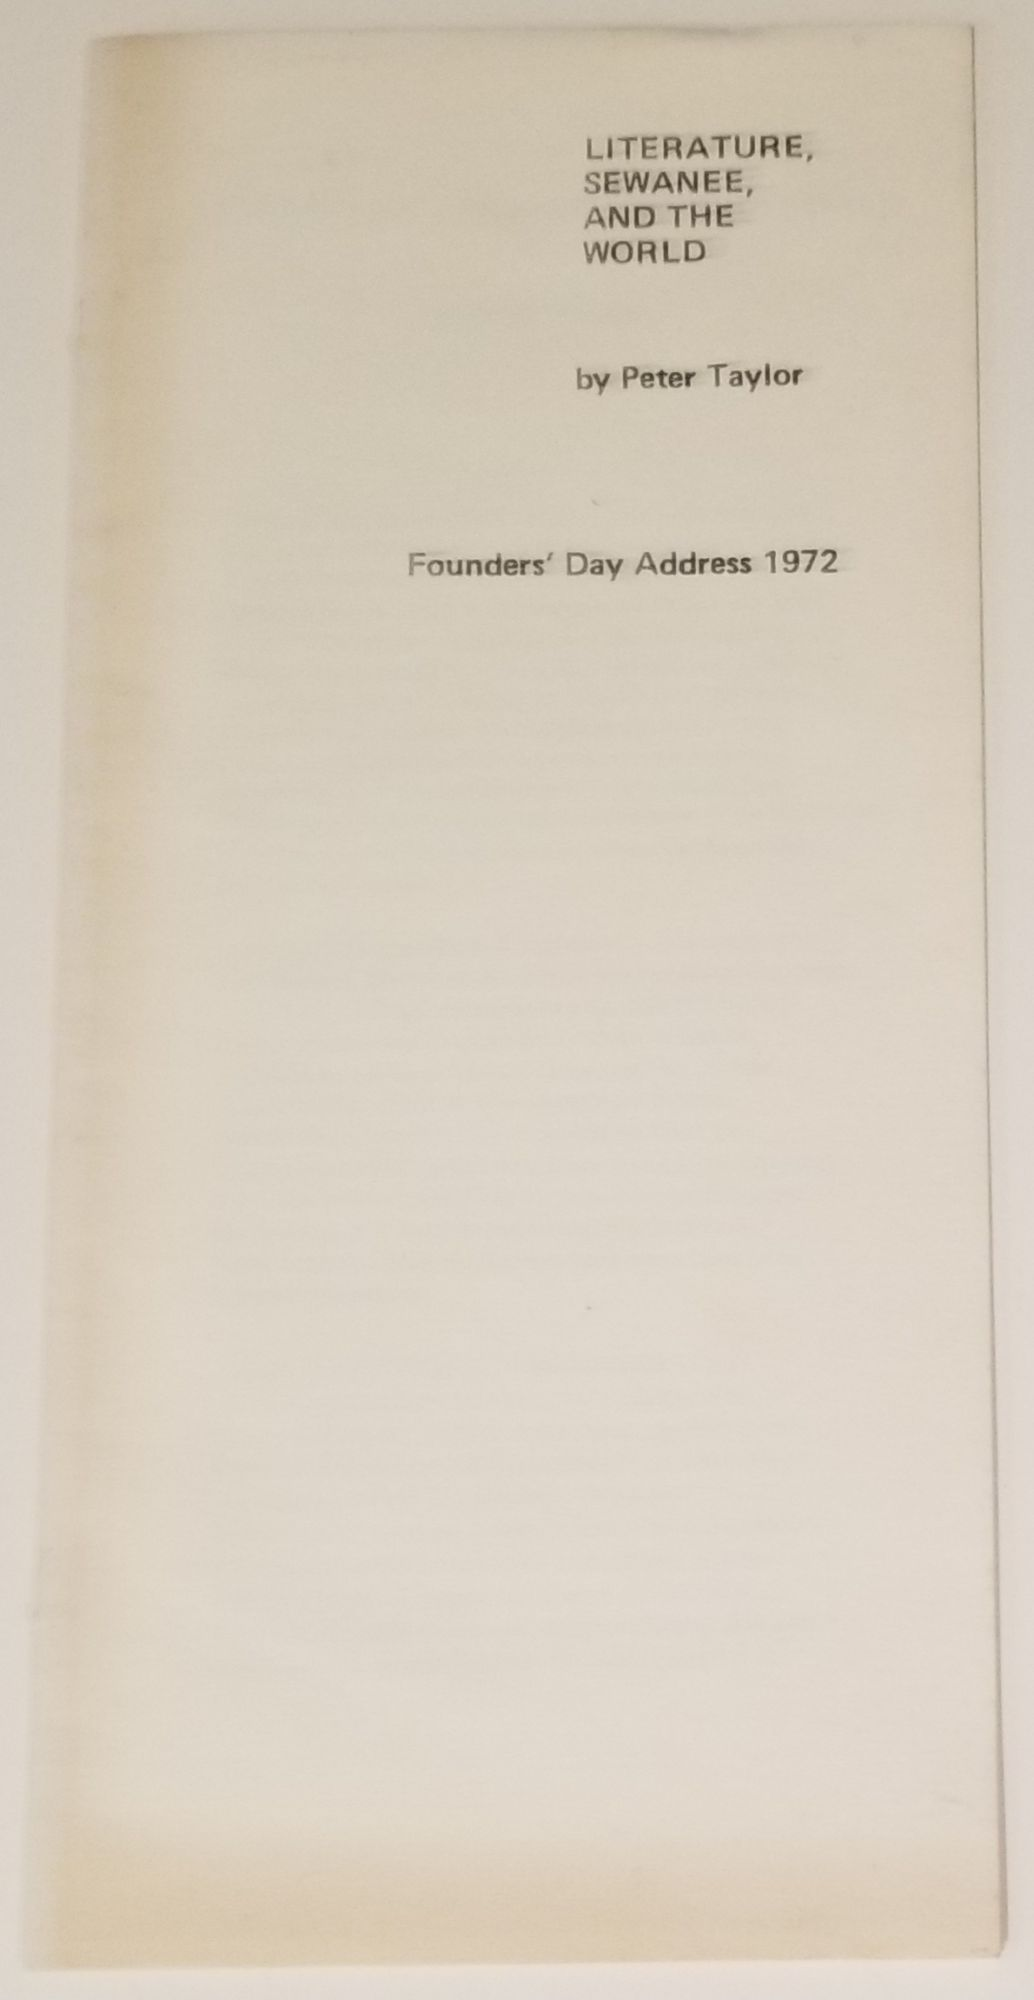 LITERATURE, SEWANEE, AND THE WORLD. Founders' Day Address 1972. Peter Taylor.